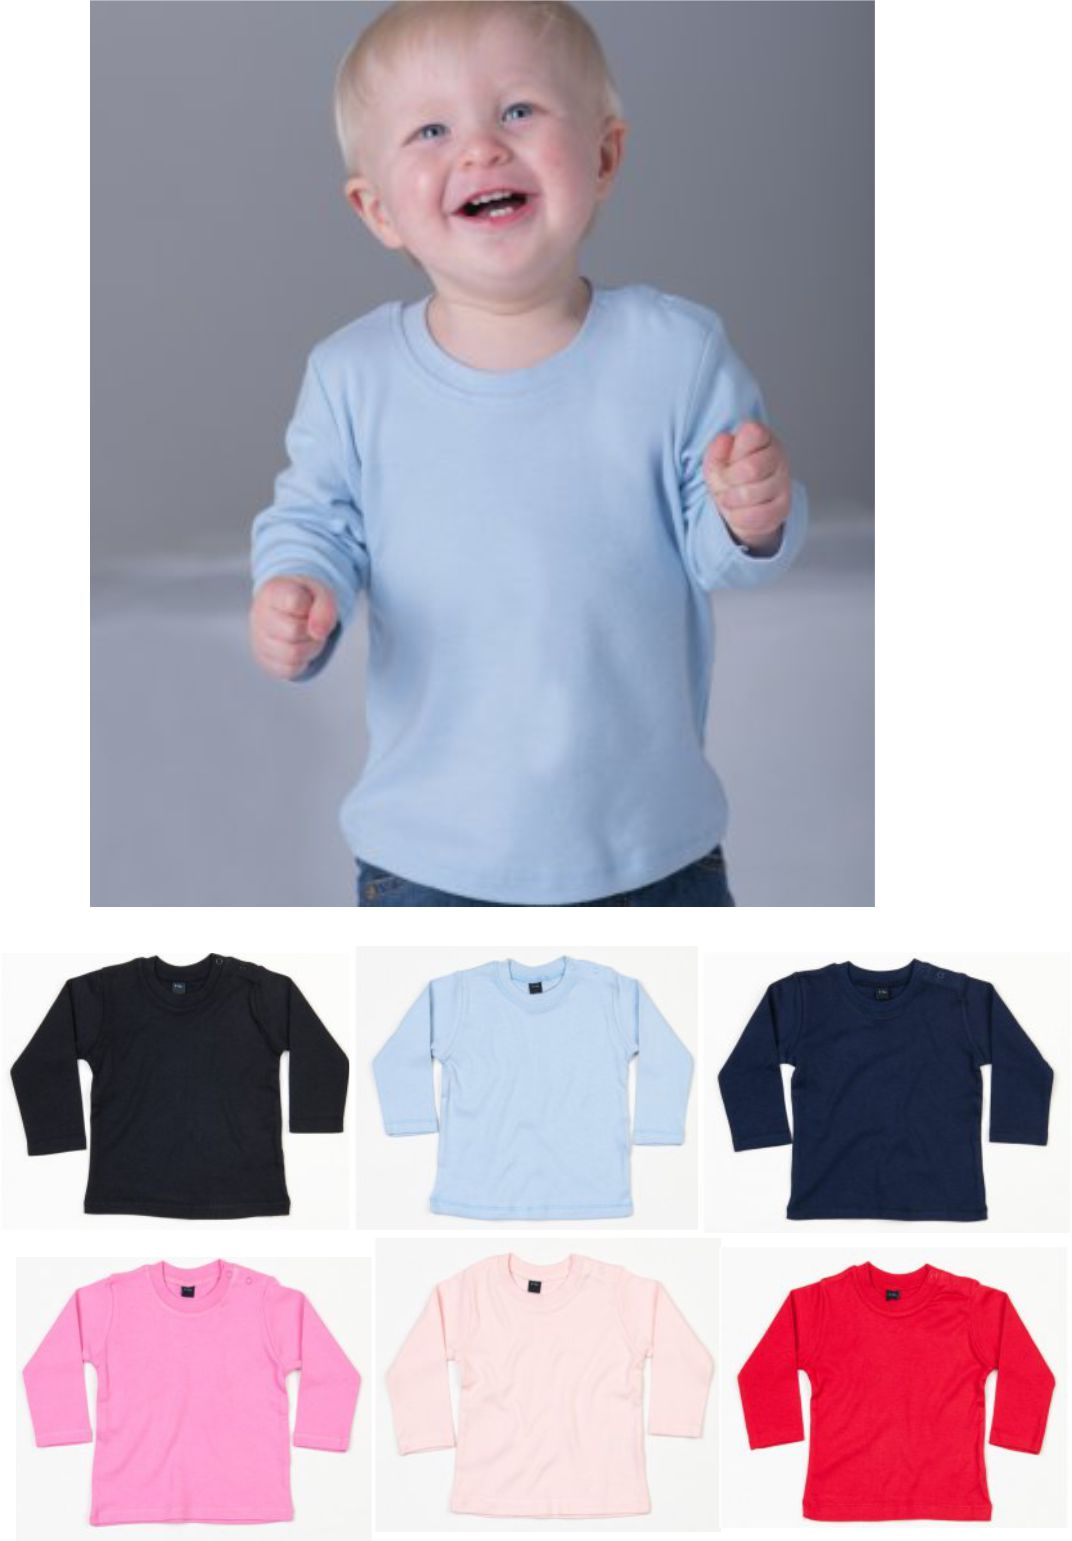 Babybugz BZ11 Baby Long Sleeve Tee Shirt